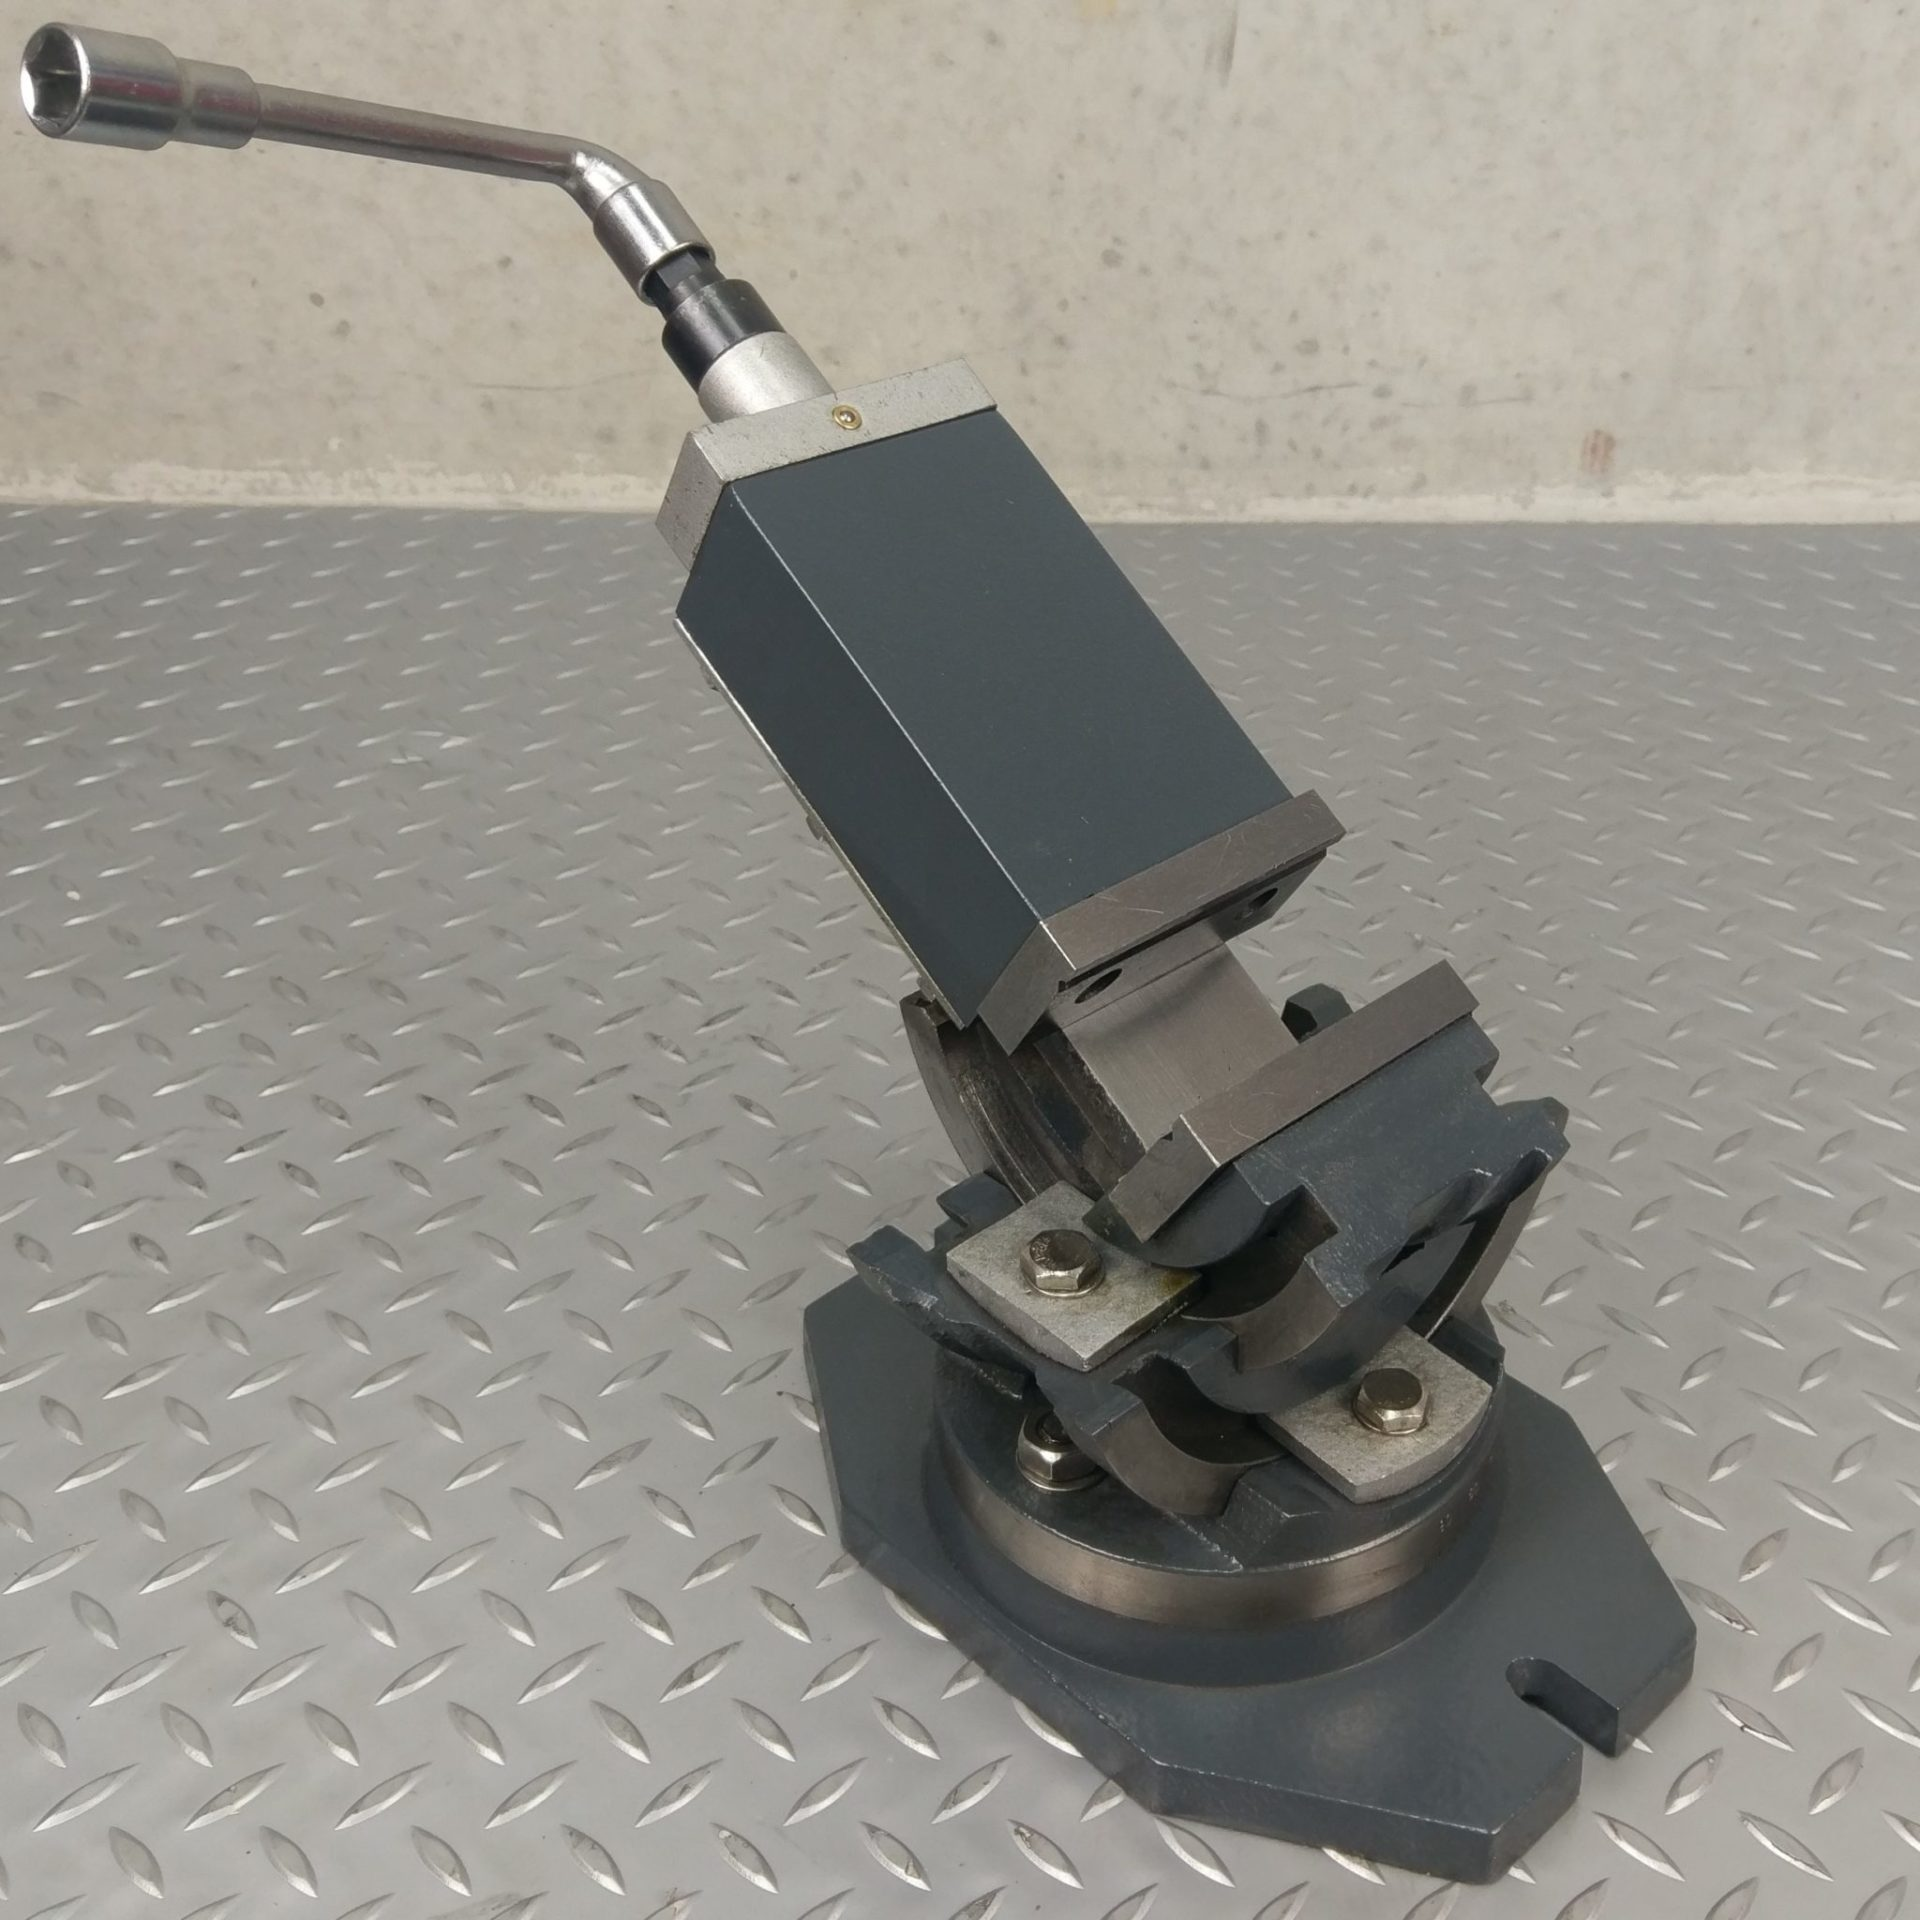 Metex By Optimum 75mm 3 Axis Swivel Vice Redfoxmachinery